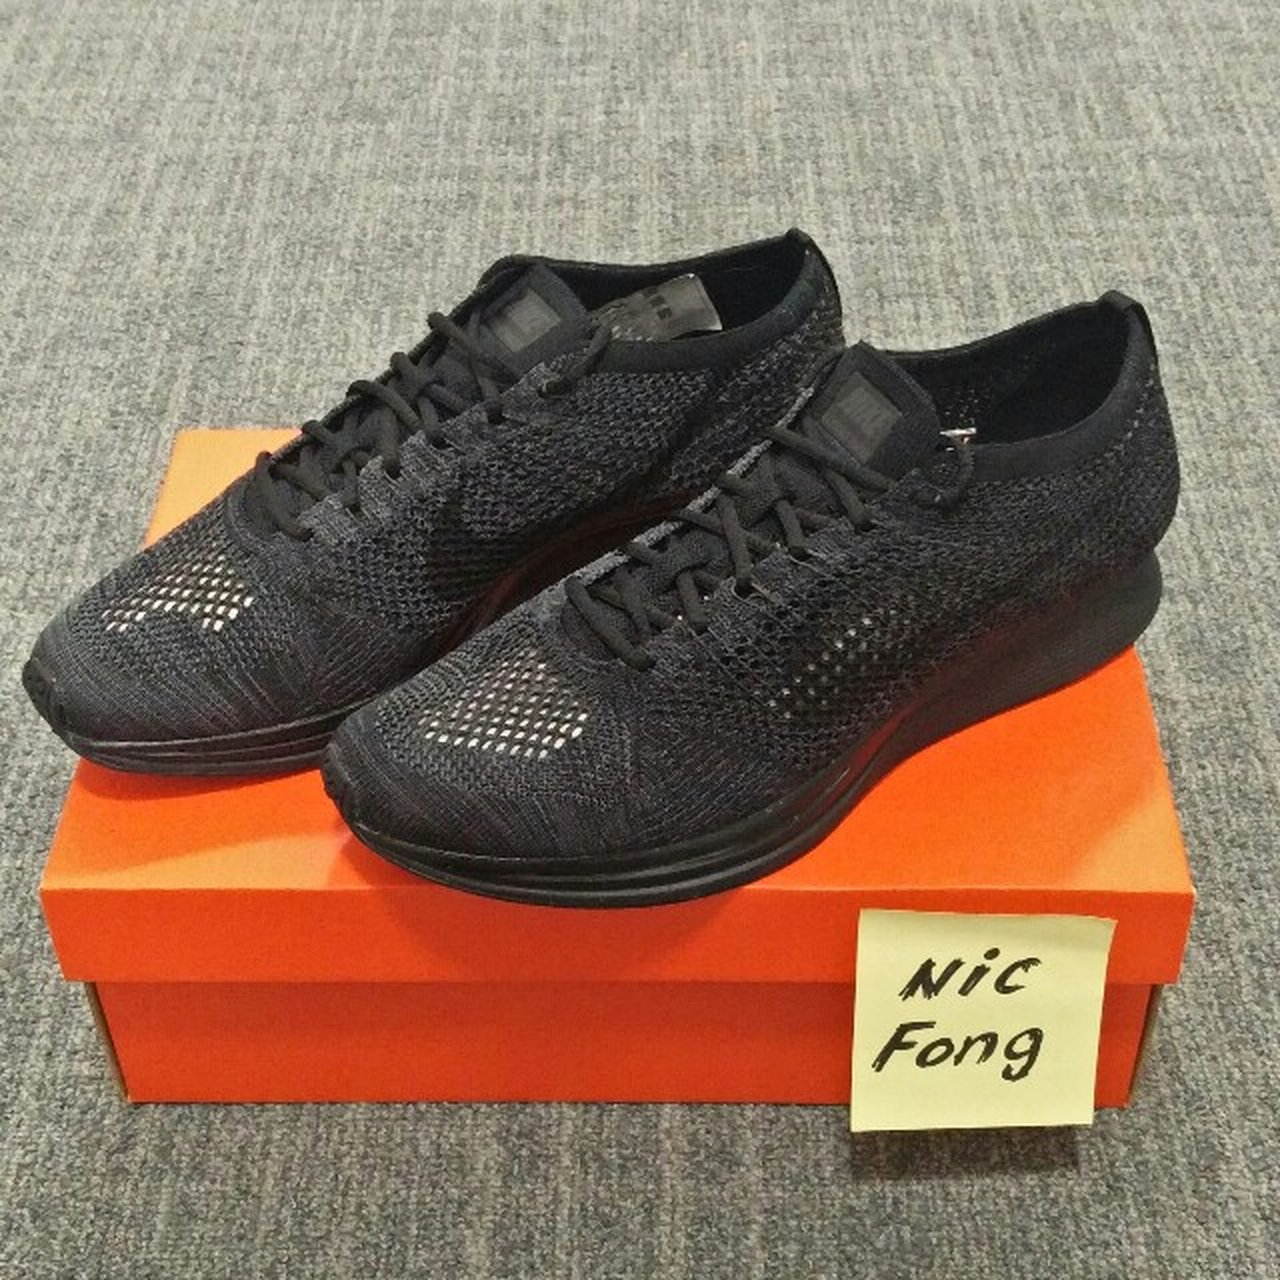 8588c2626de6c2 Nike Flyknit Racer Triple Black Midnight UK10.5 Size      - Depop